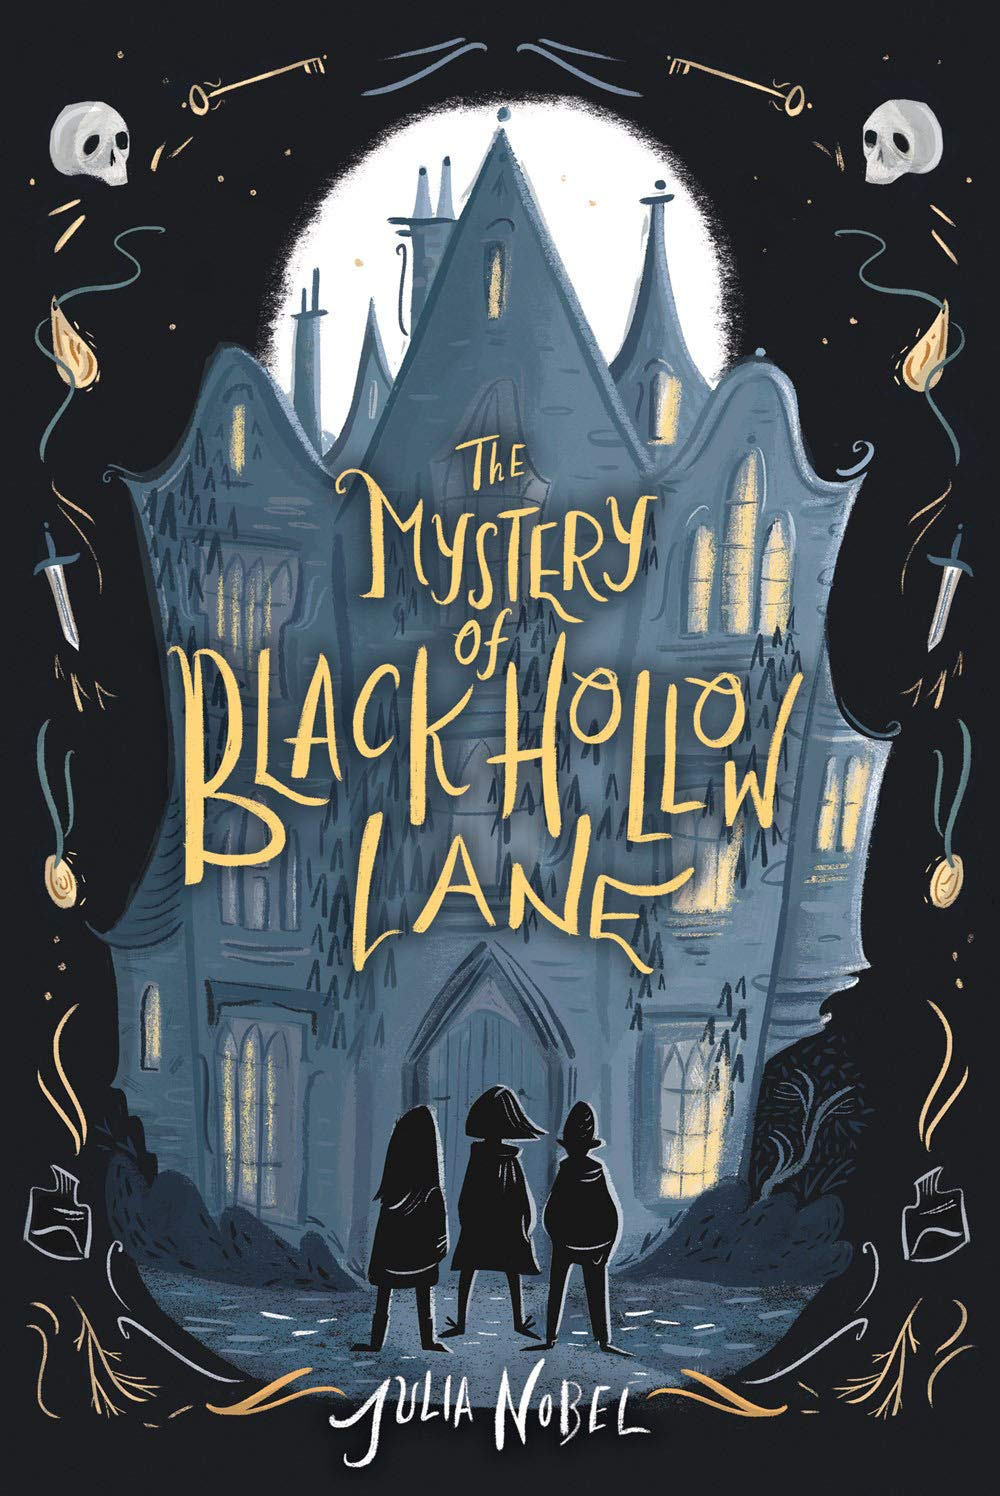 The Mystery of Black Hollow Lane, by Julia Nobel